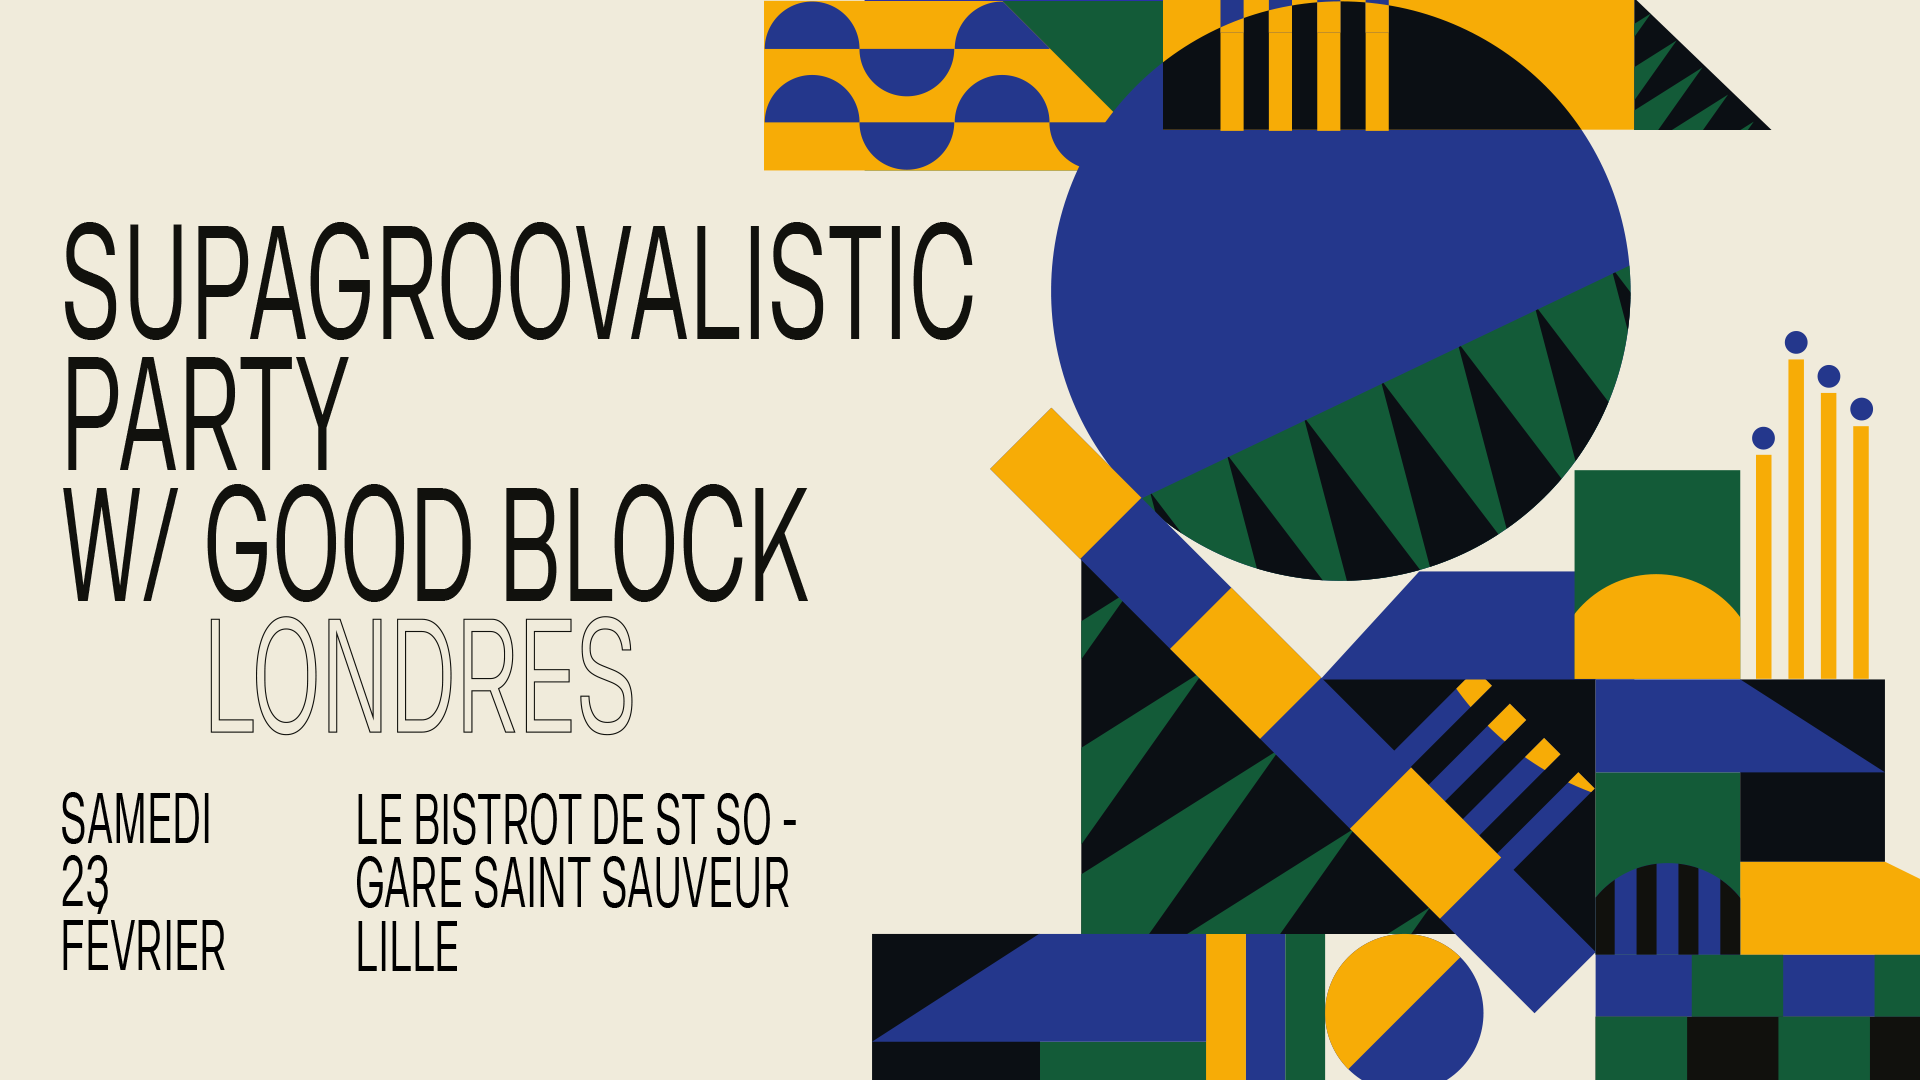 Supagroovalistic Party avec Good Block